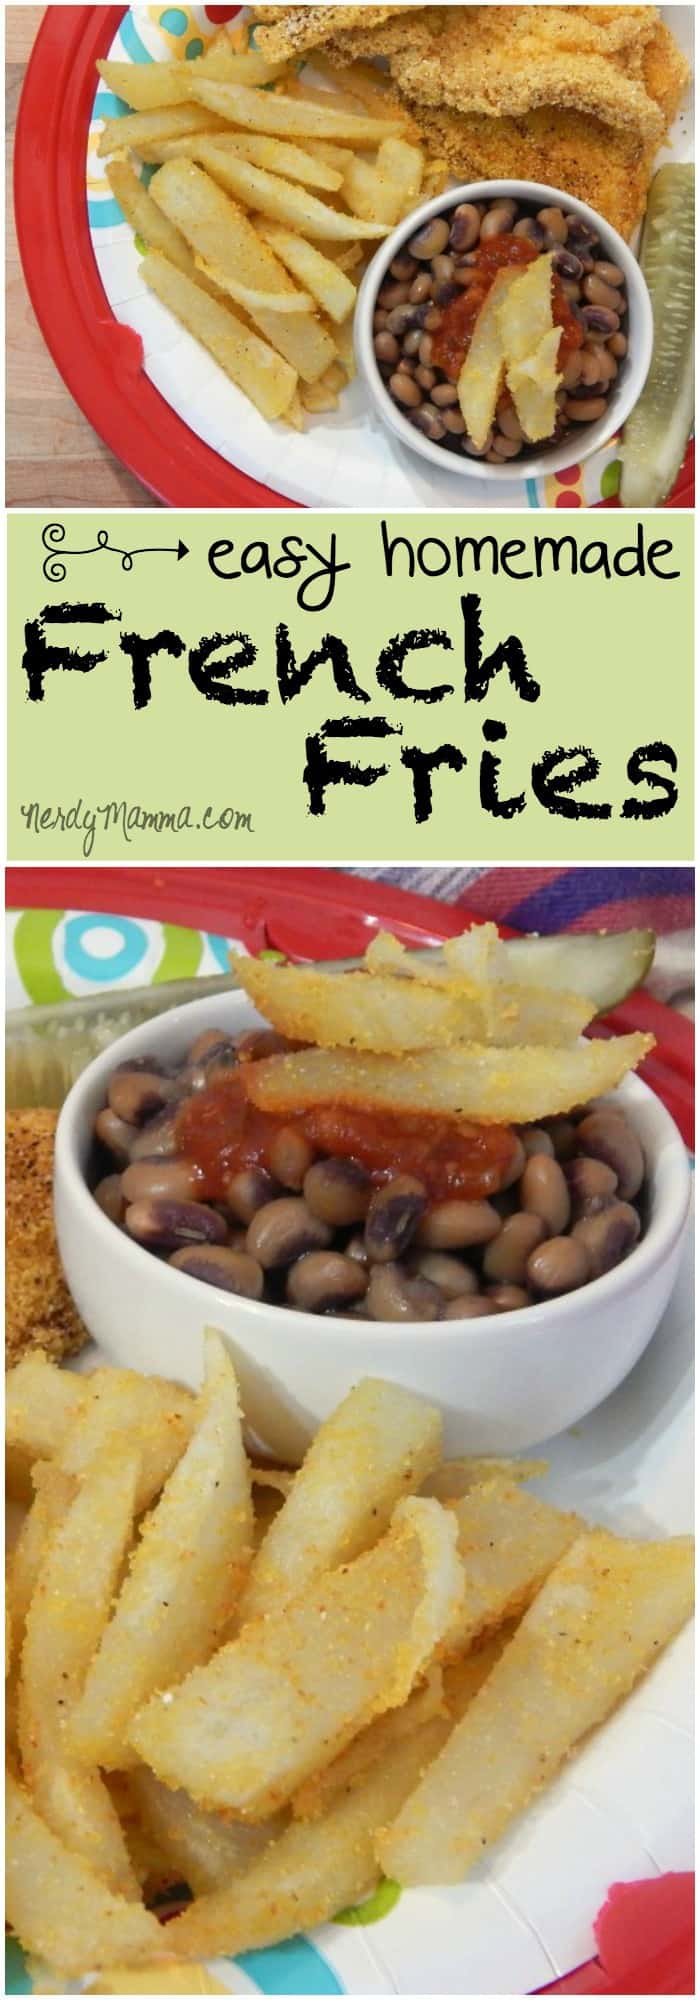 My kids (and husband) love this recipe for easy homemade french fries. They eat EVERY ONE. We could make a whole meal of out it. Gluten-free, dairy-free, eggless. It hits all our high-points!